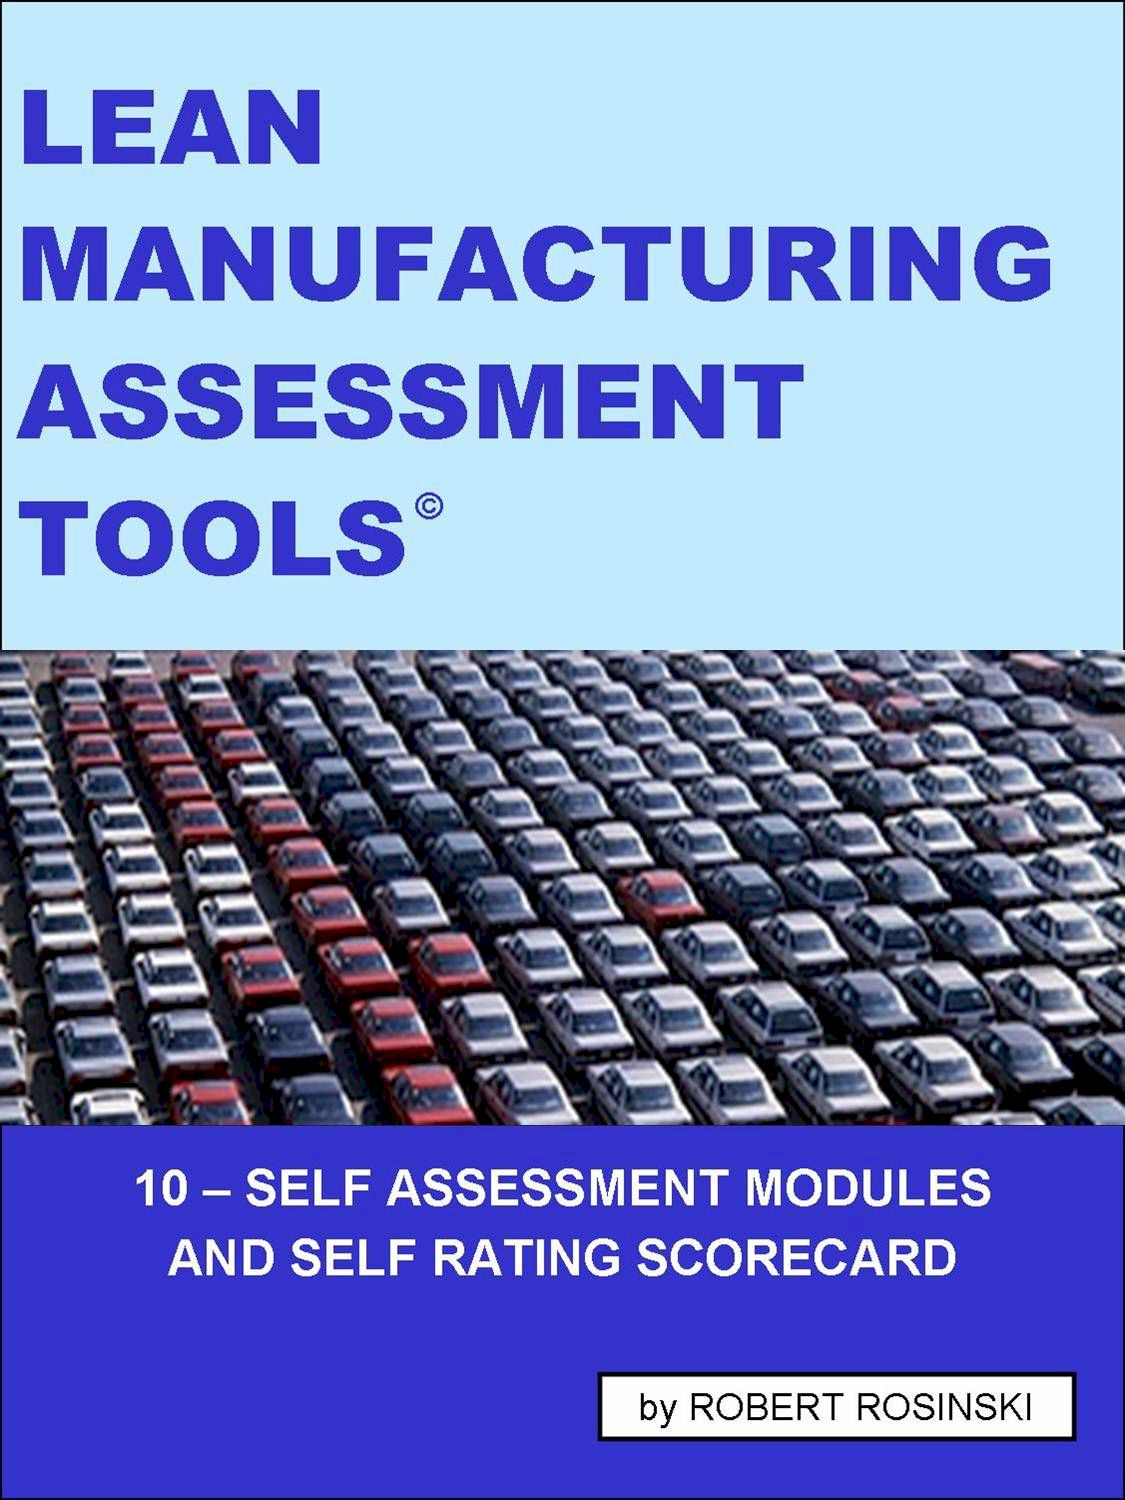 Lean Manufacturing Assessment Tools